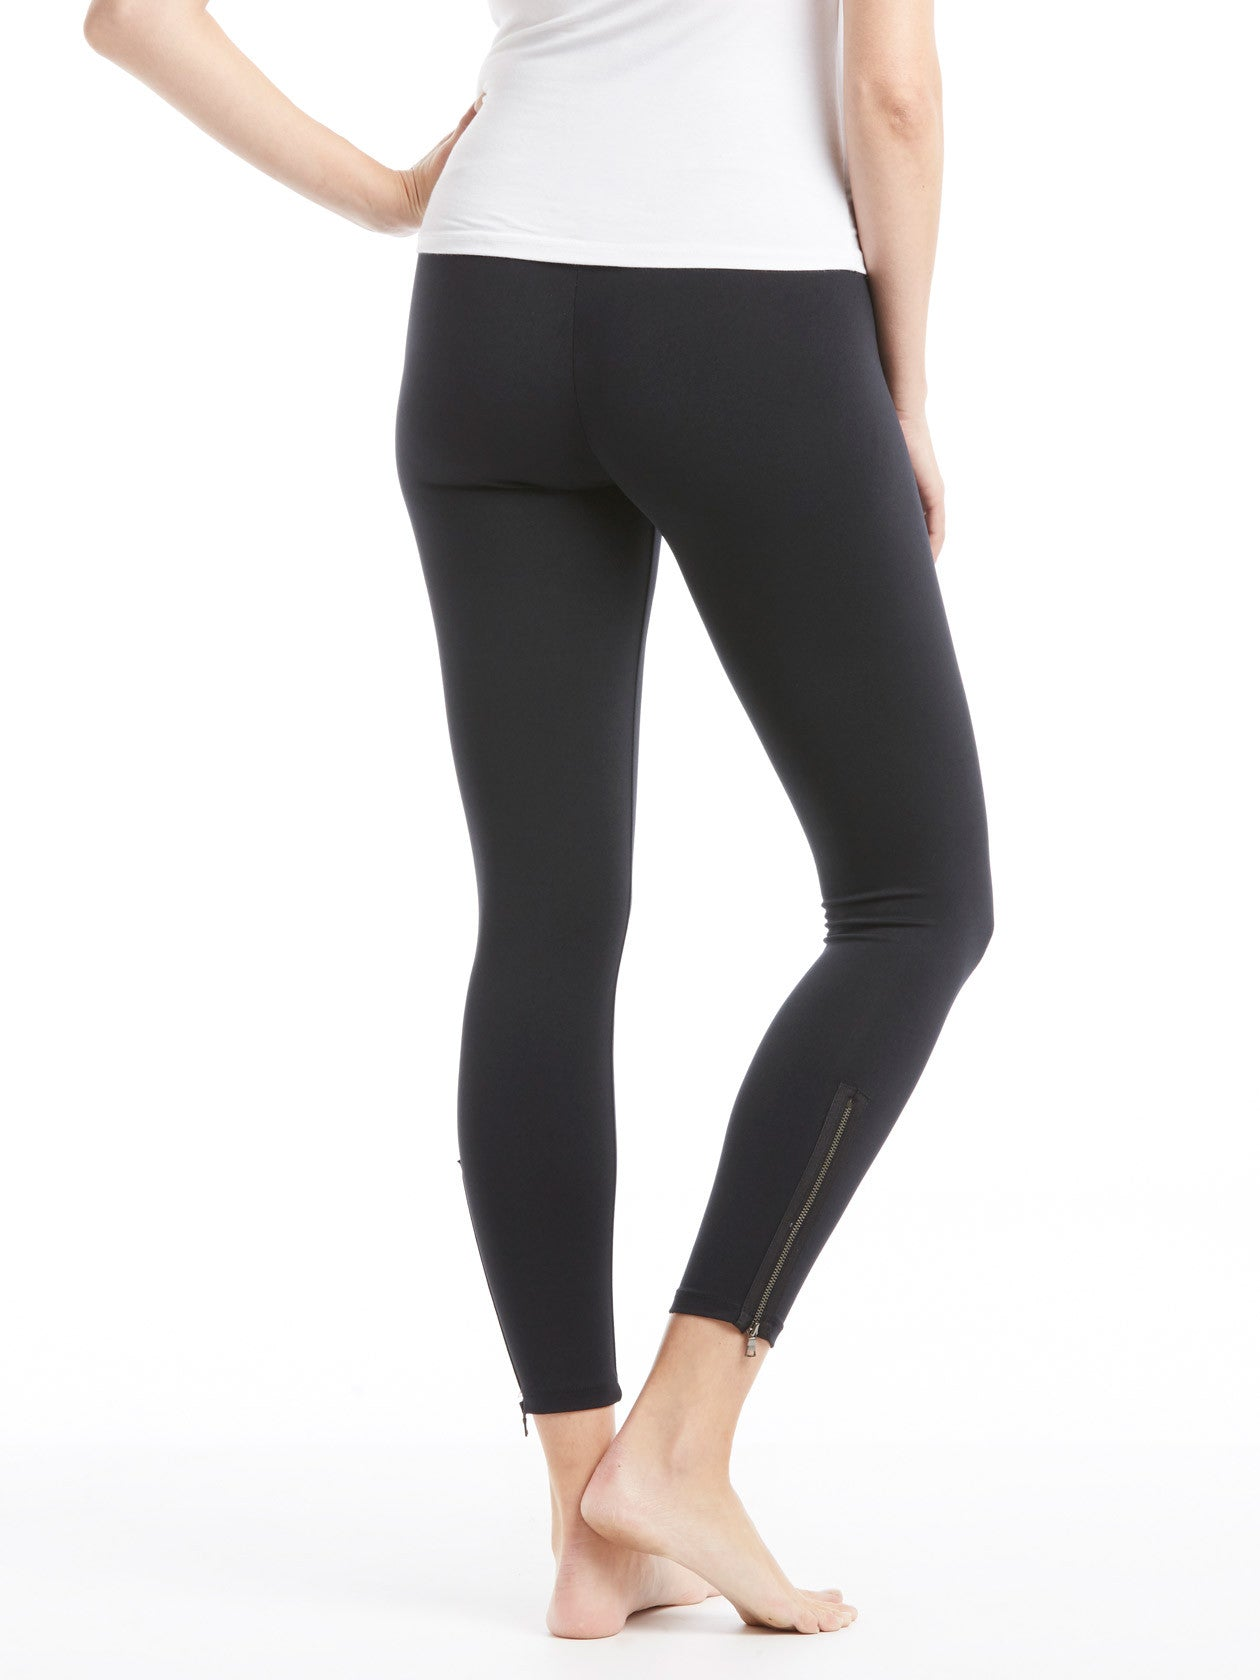 TILDEN | David Lerner Zipper Maternity Legging